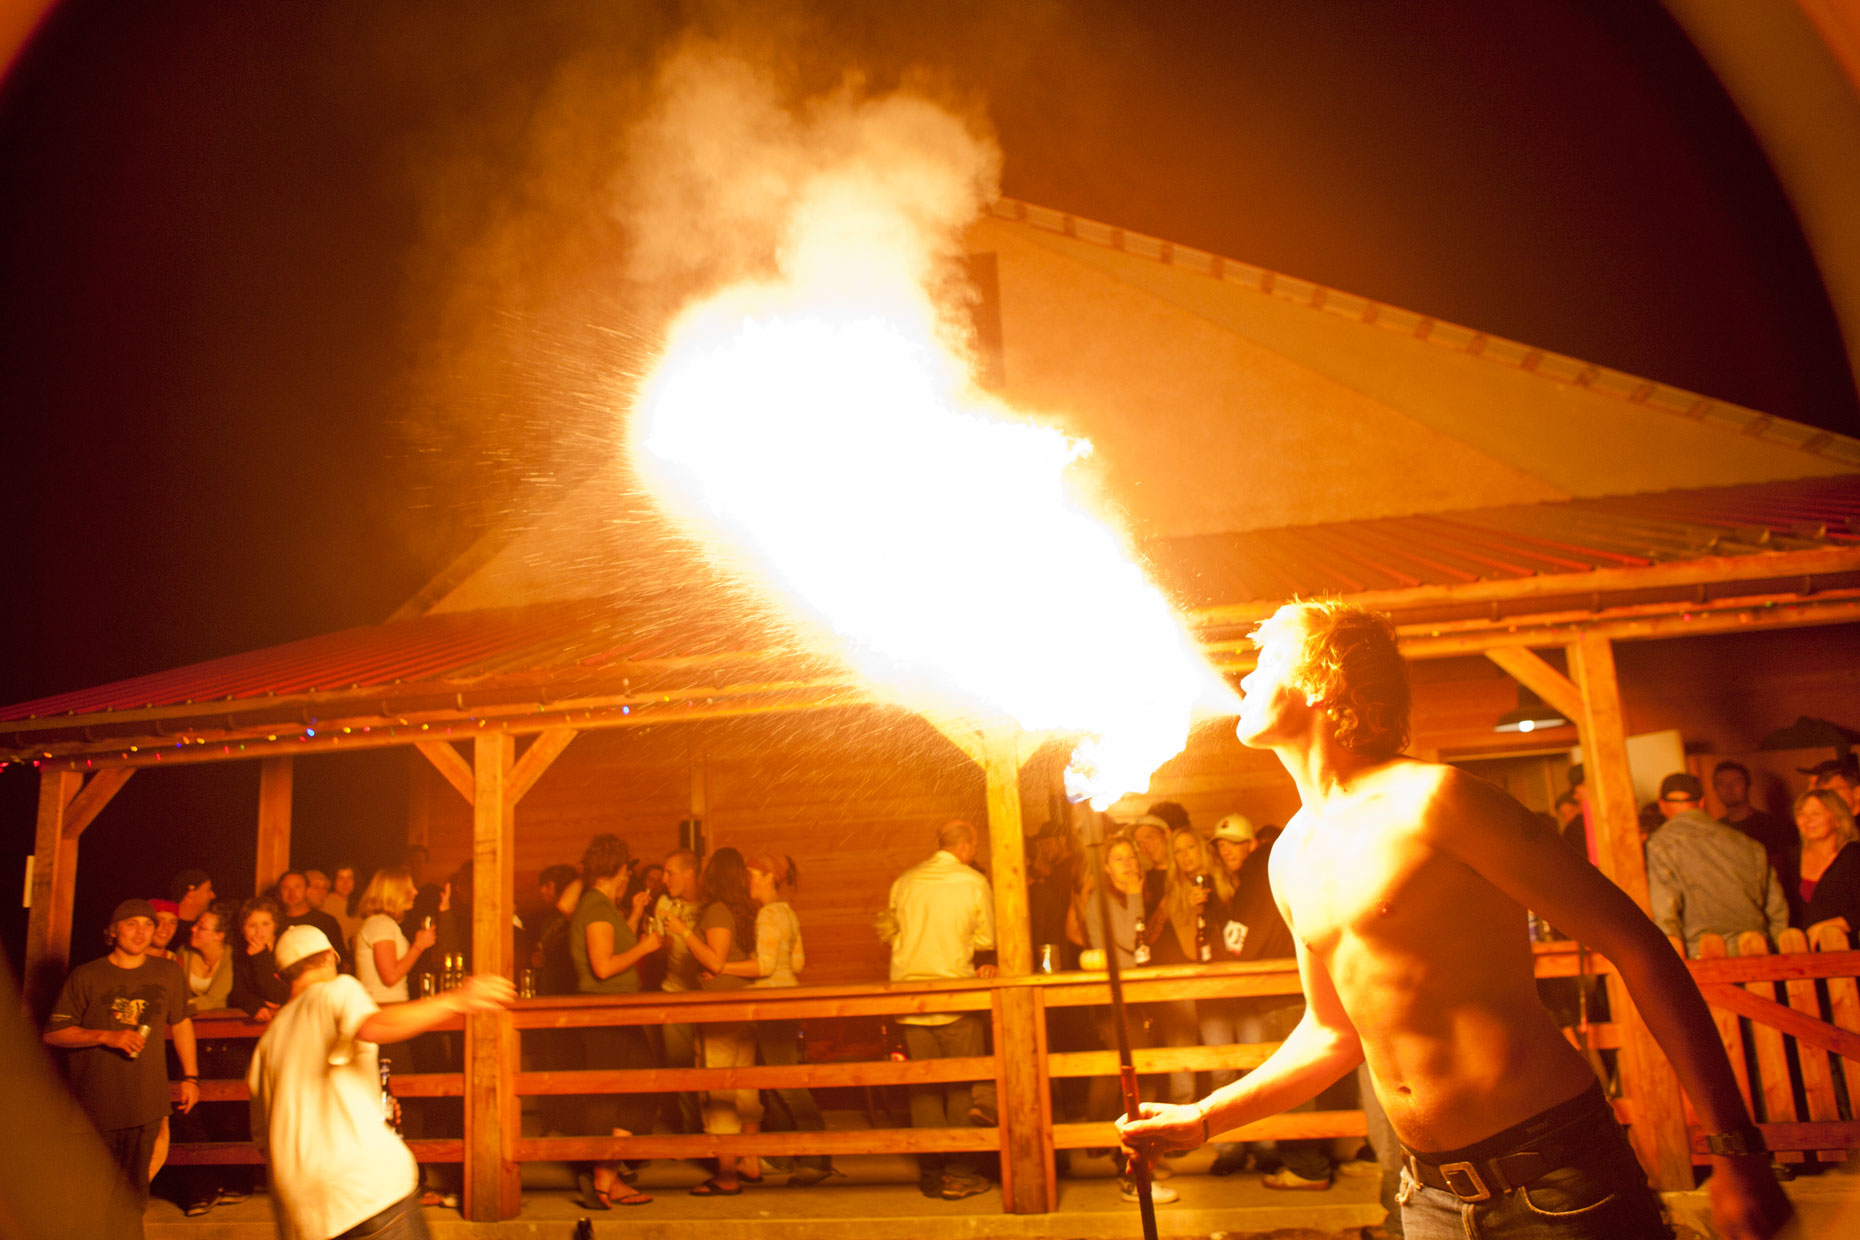 Fireball Flamethrower